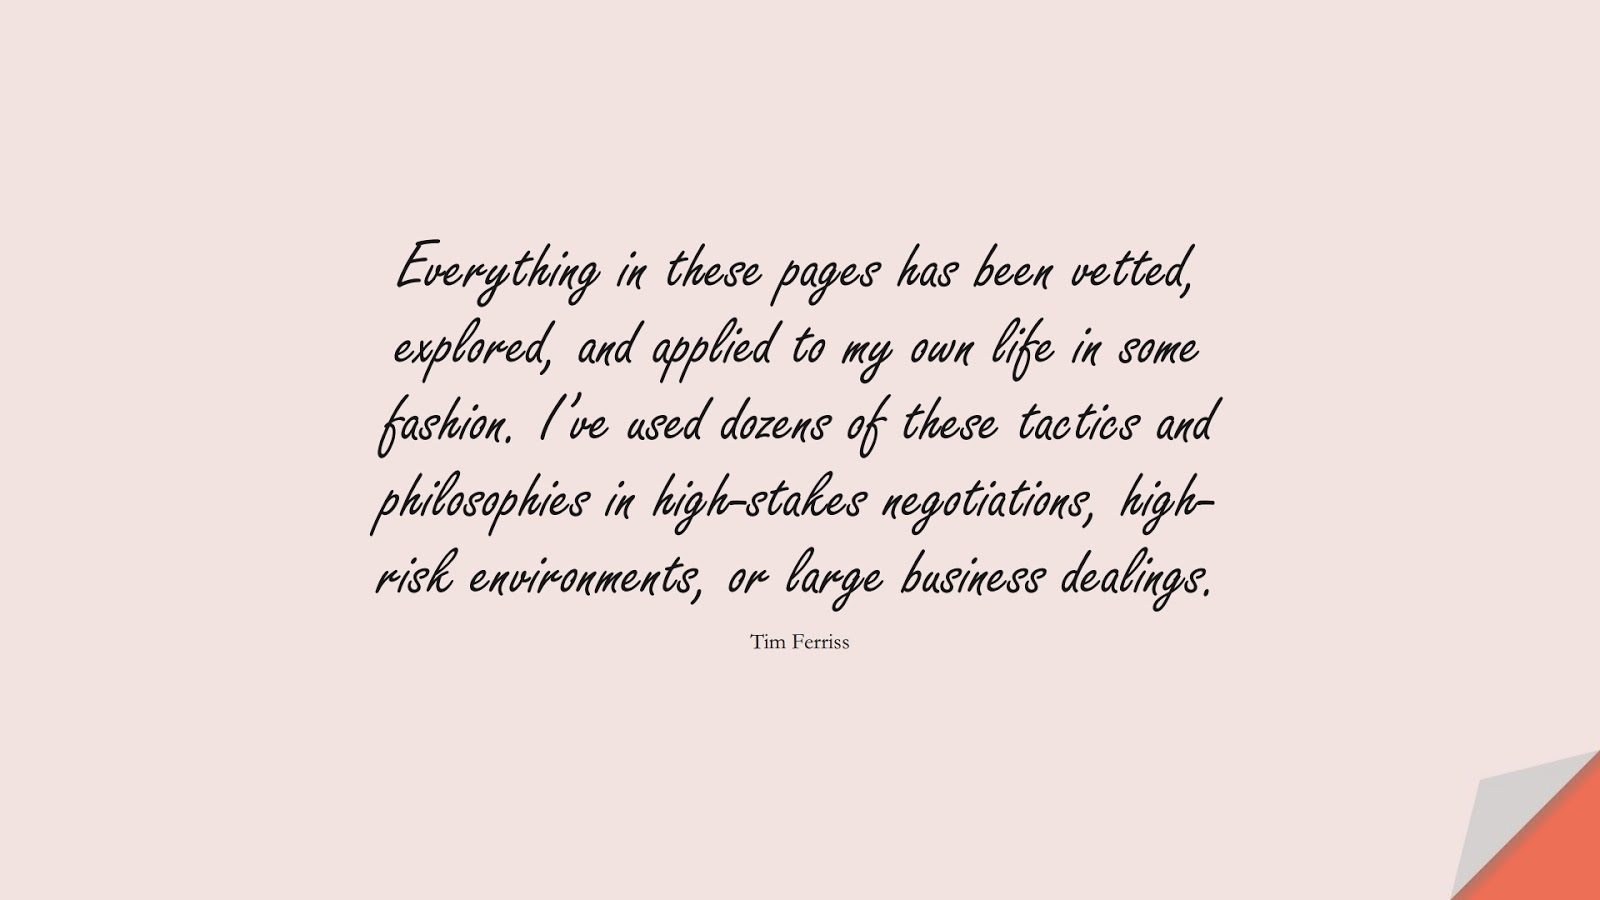 Everything in these pages has been vetted, explored, and applied to my own life in some fashion. I've used dozens of these tactics and philosophies in high-stakes negotiations, high-risk environments, or large business dealings. (Tim Ferriss);  #TimFerrissQuotes